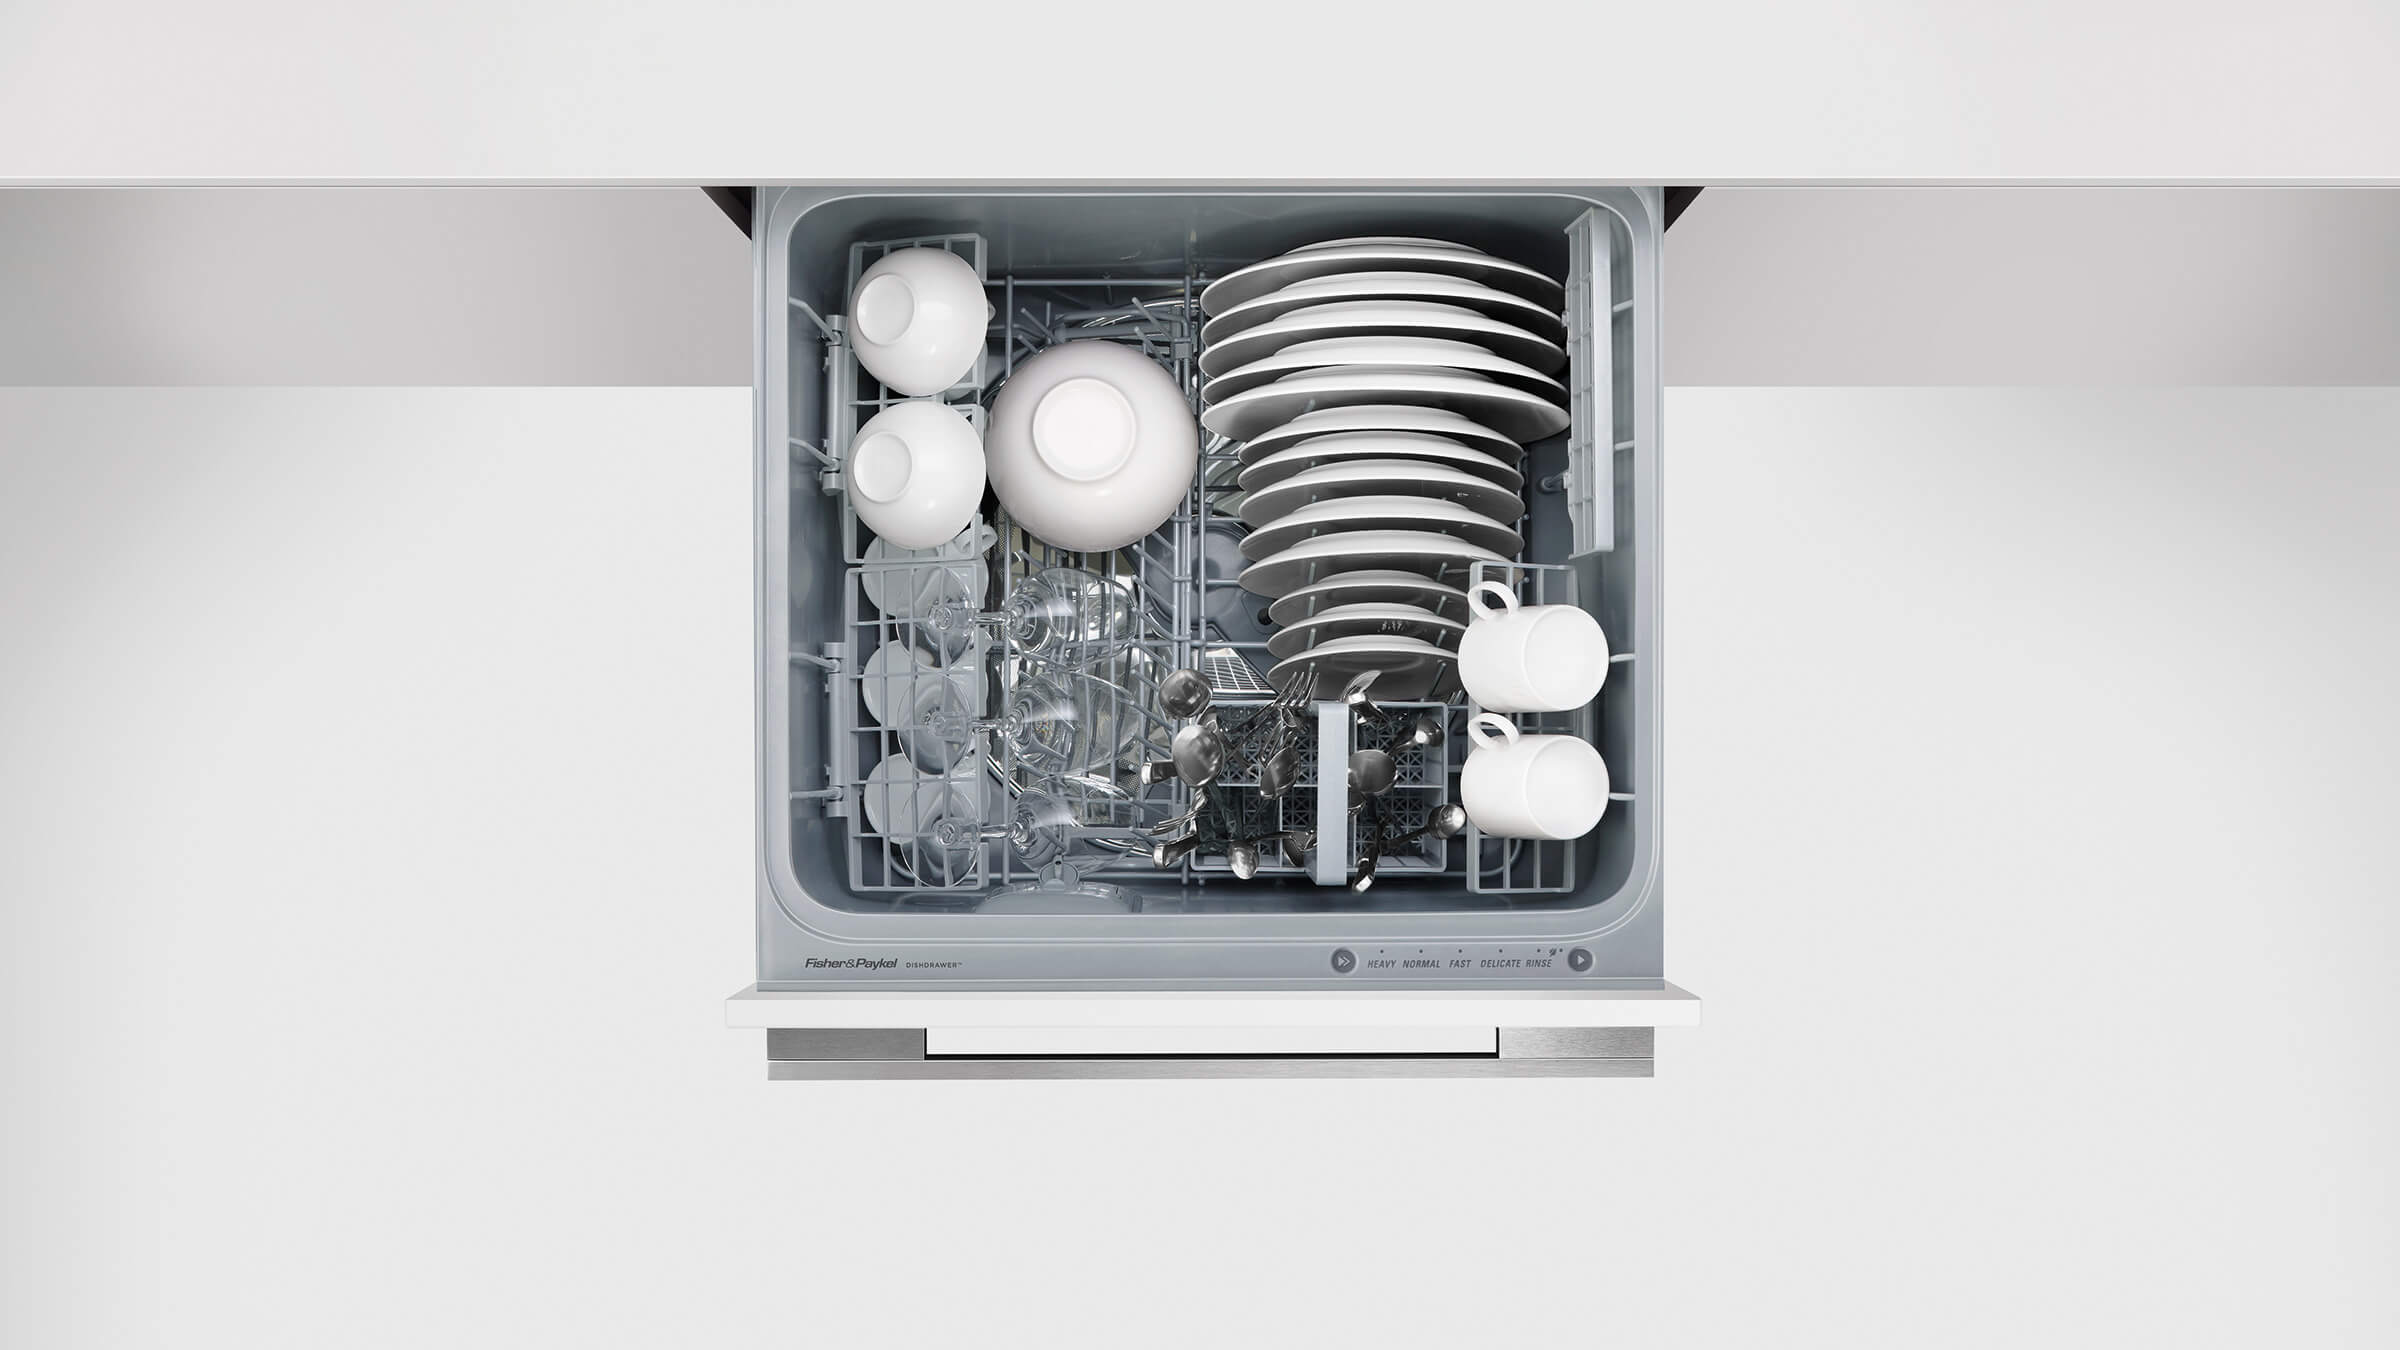 fisher and paykel double drawer dishwasher manual